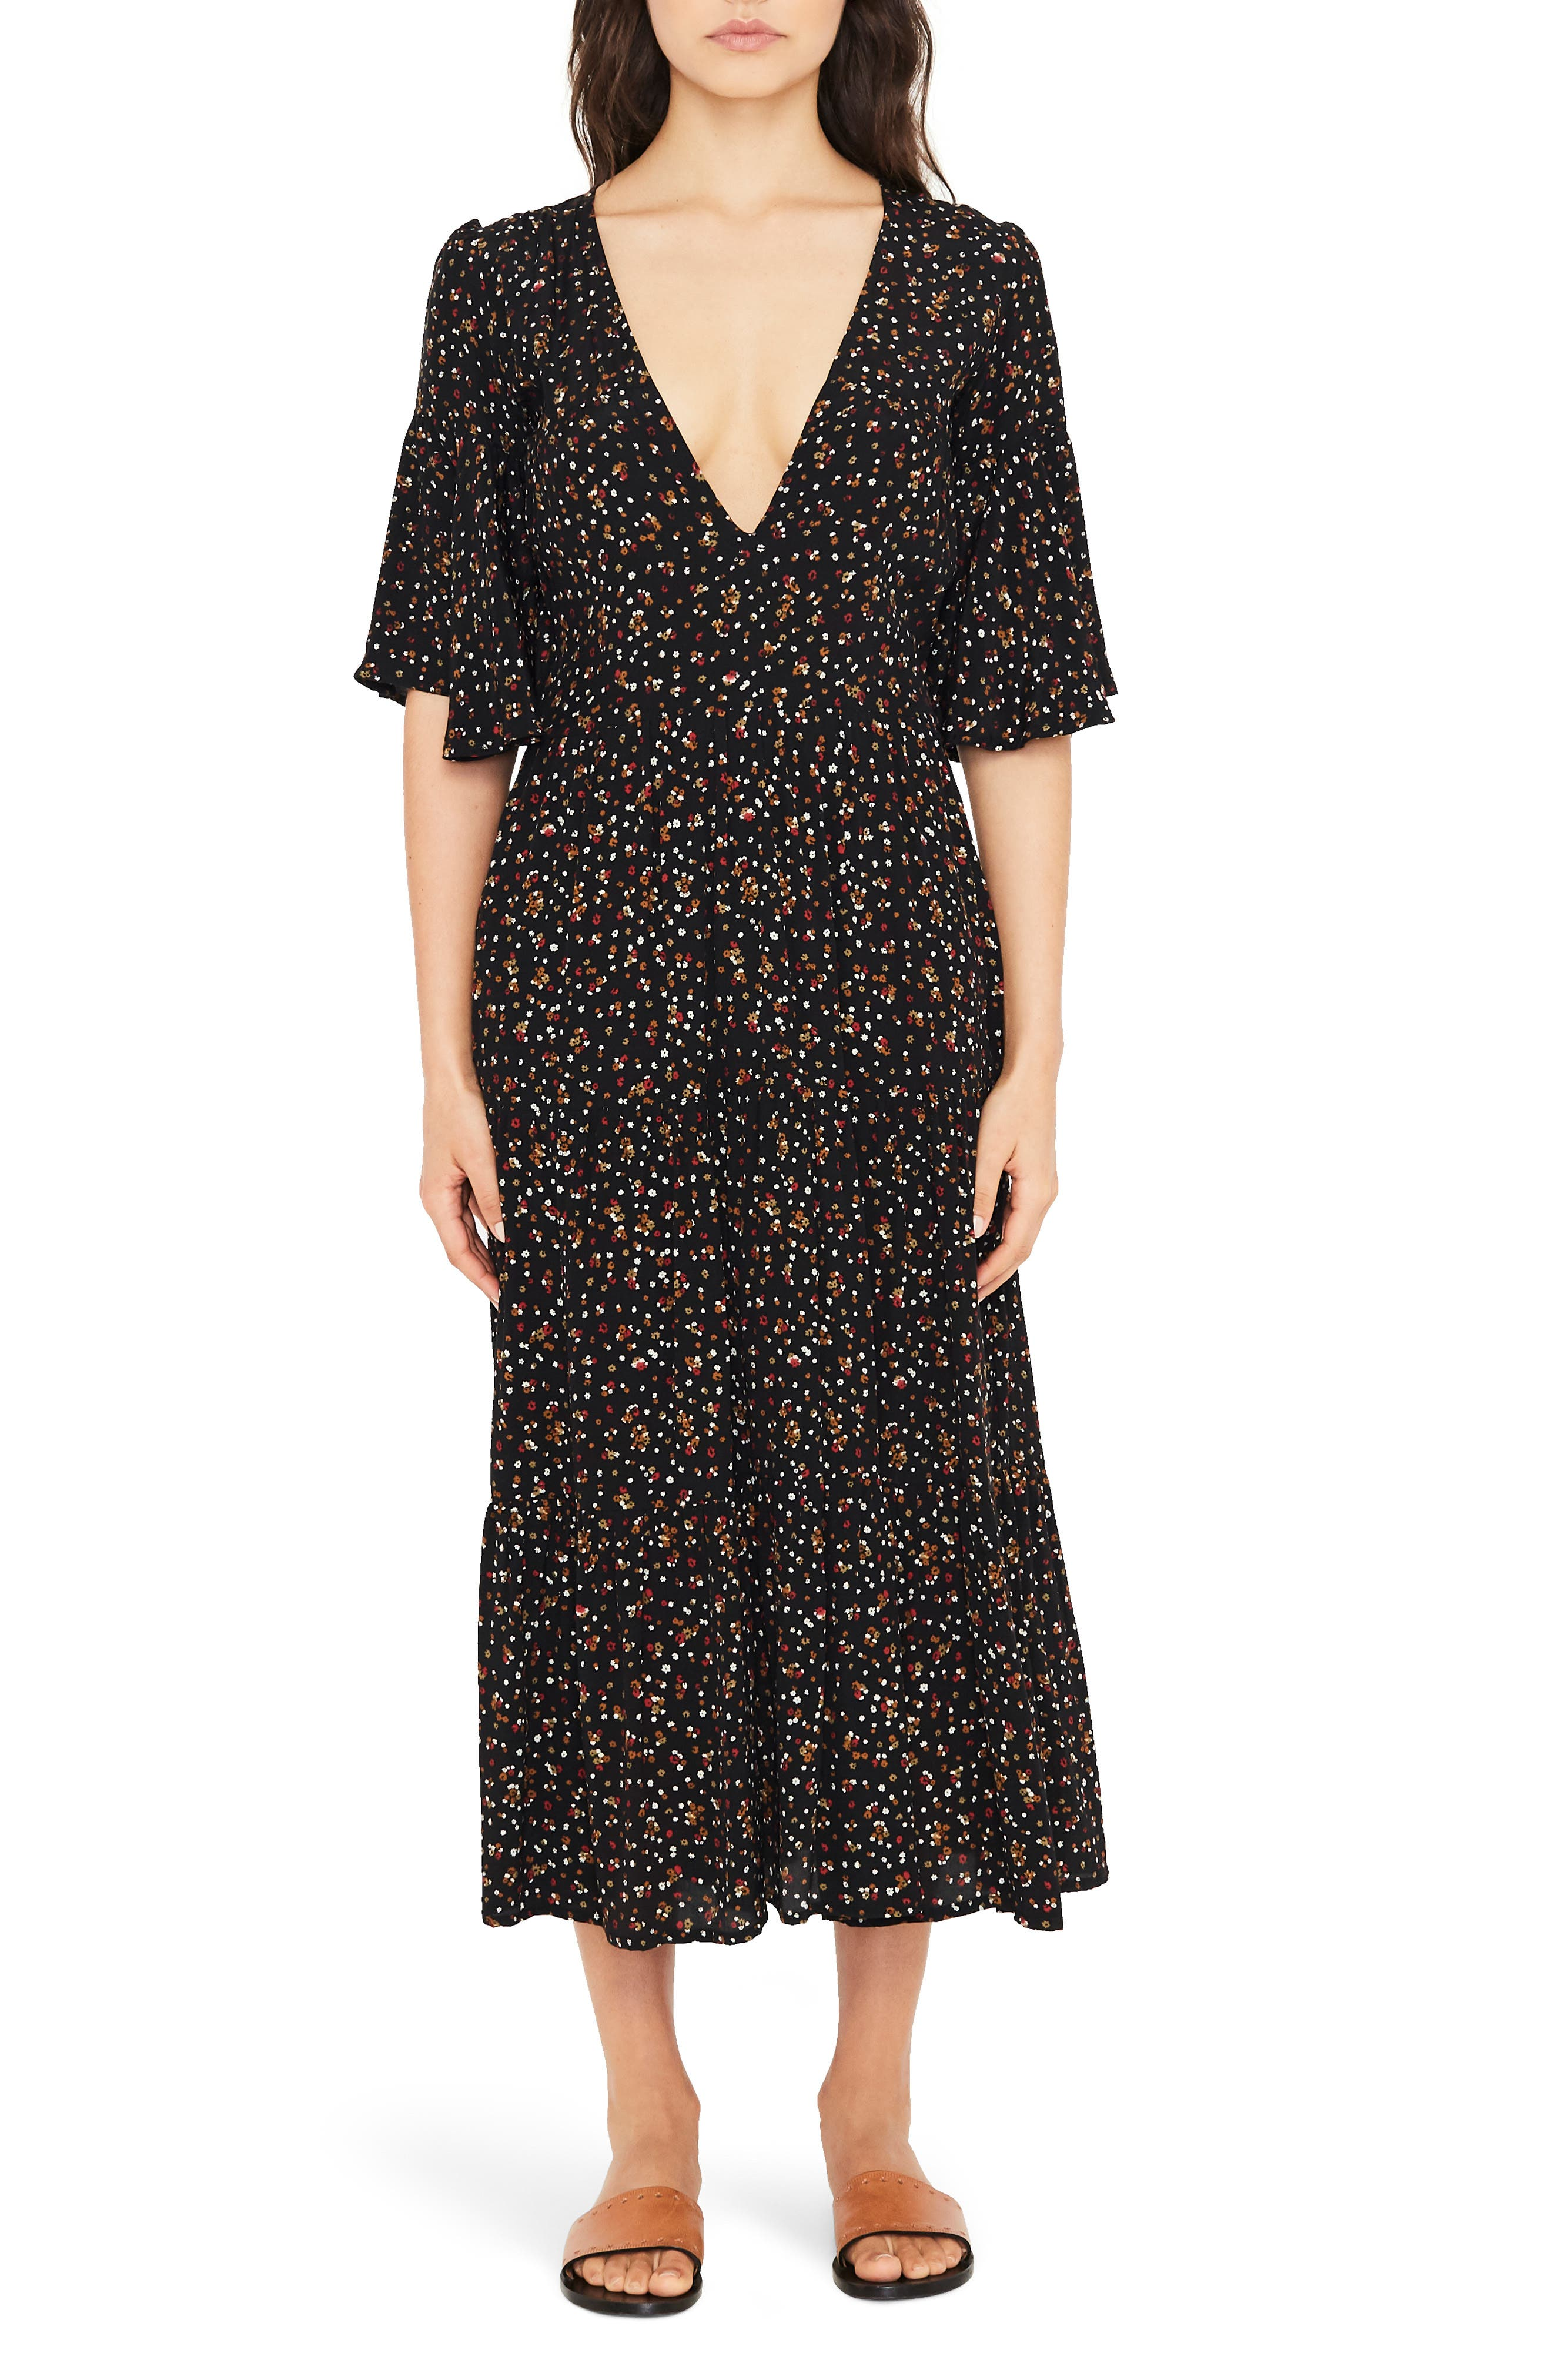 Melia Ditsy Floral Print Midi Dress,                             Main thumbnail 1, color,                             001